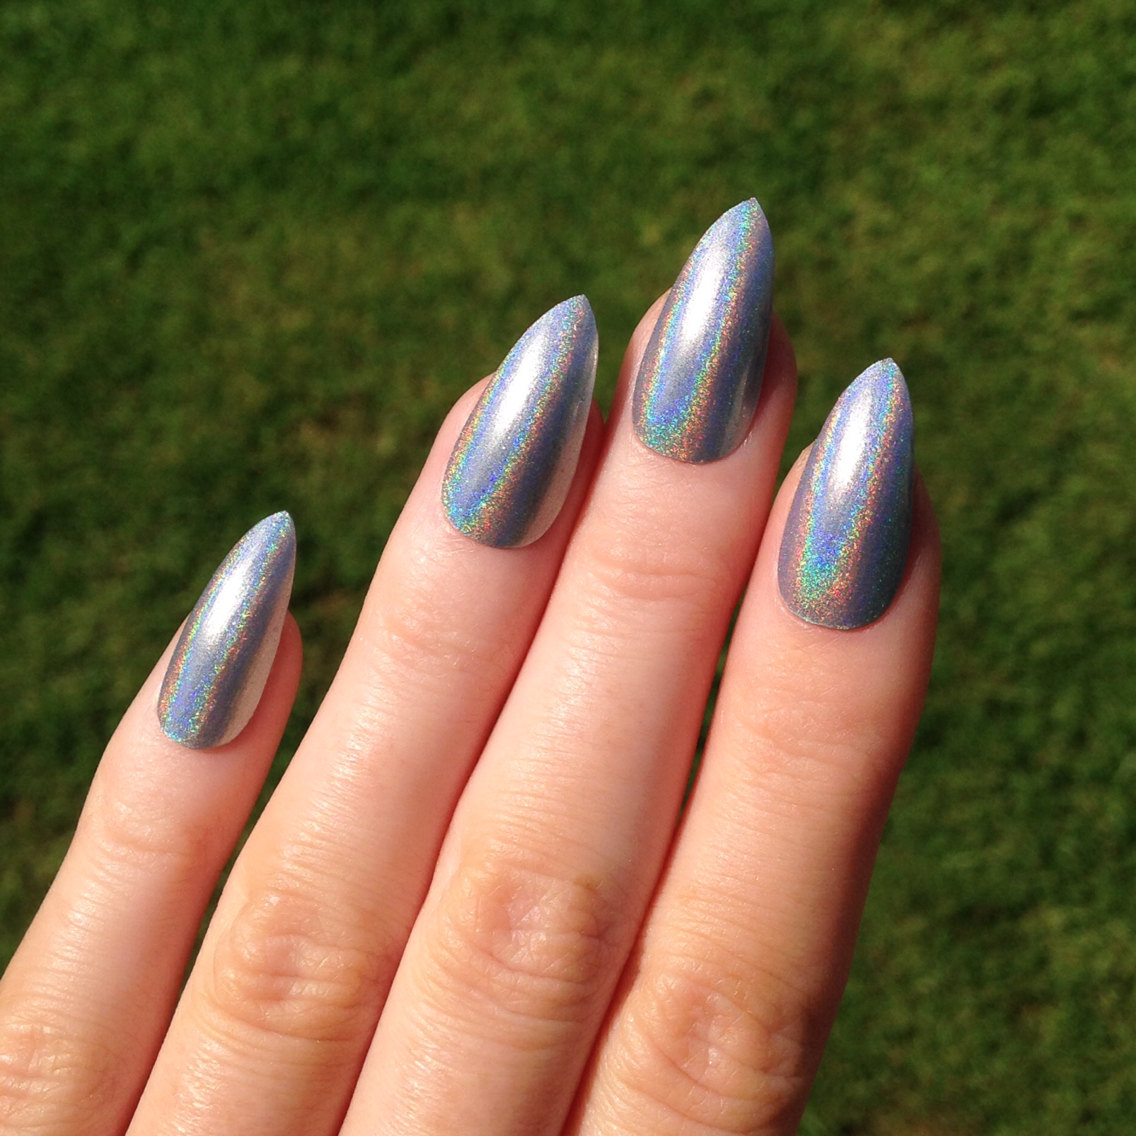 Ultra Holographic Silver Stiletto Nails Nail Designs Art Acrylic Pointy